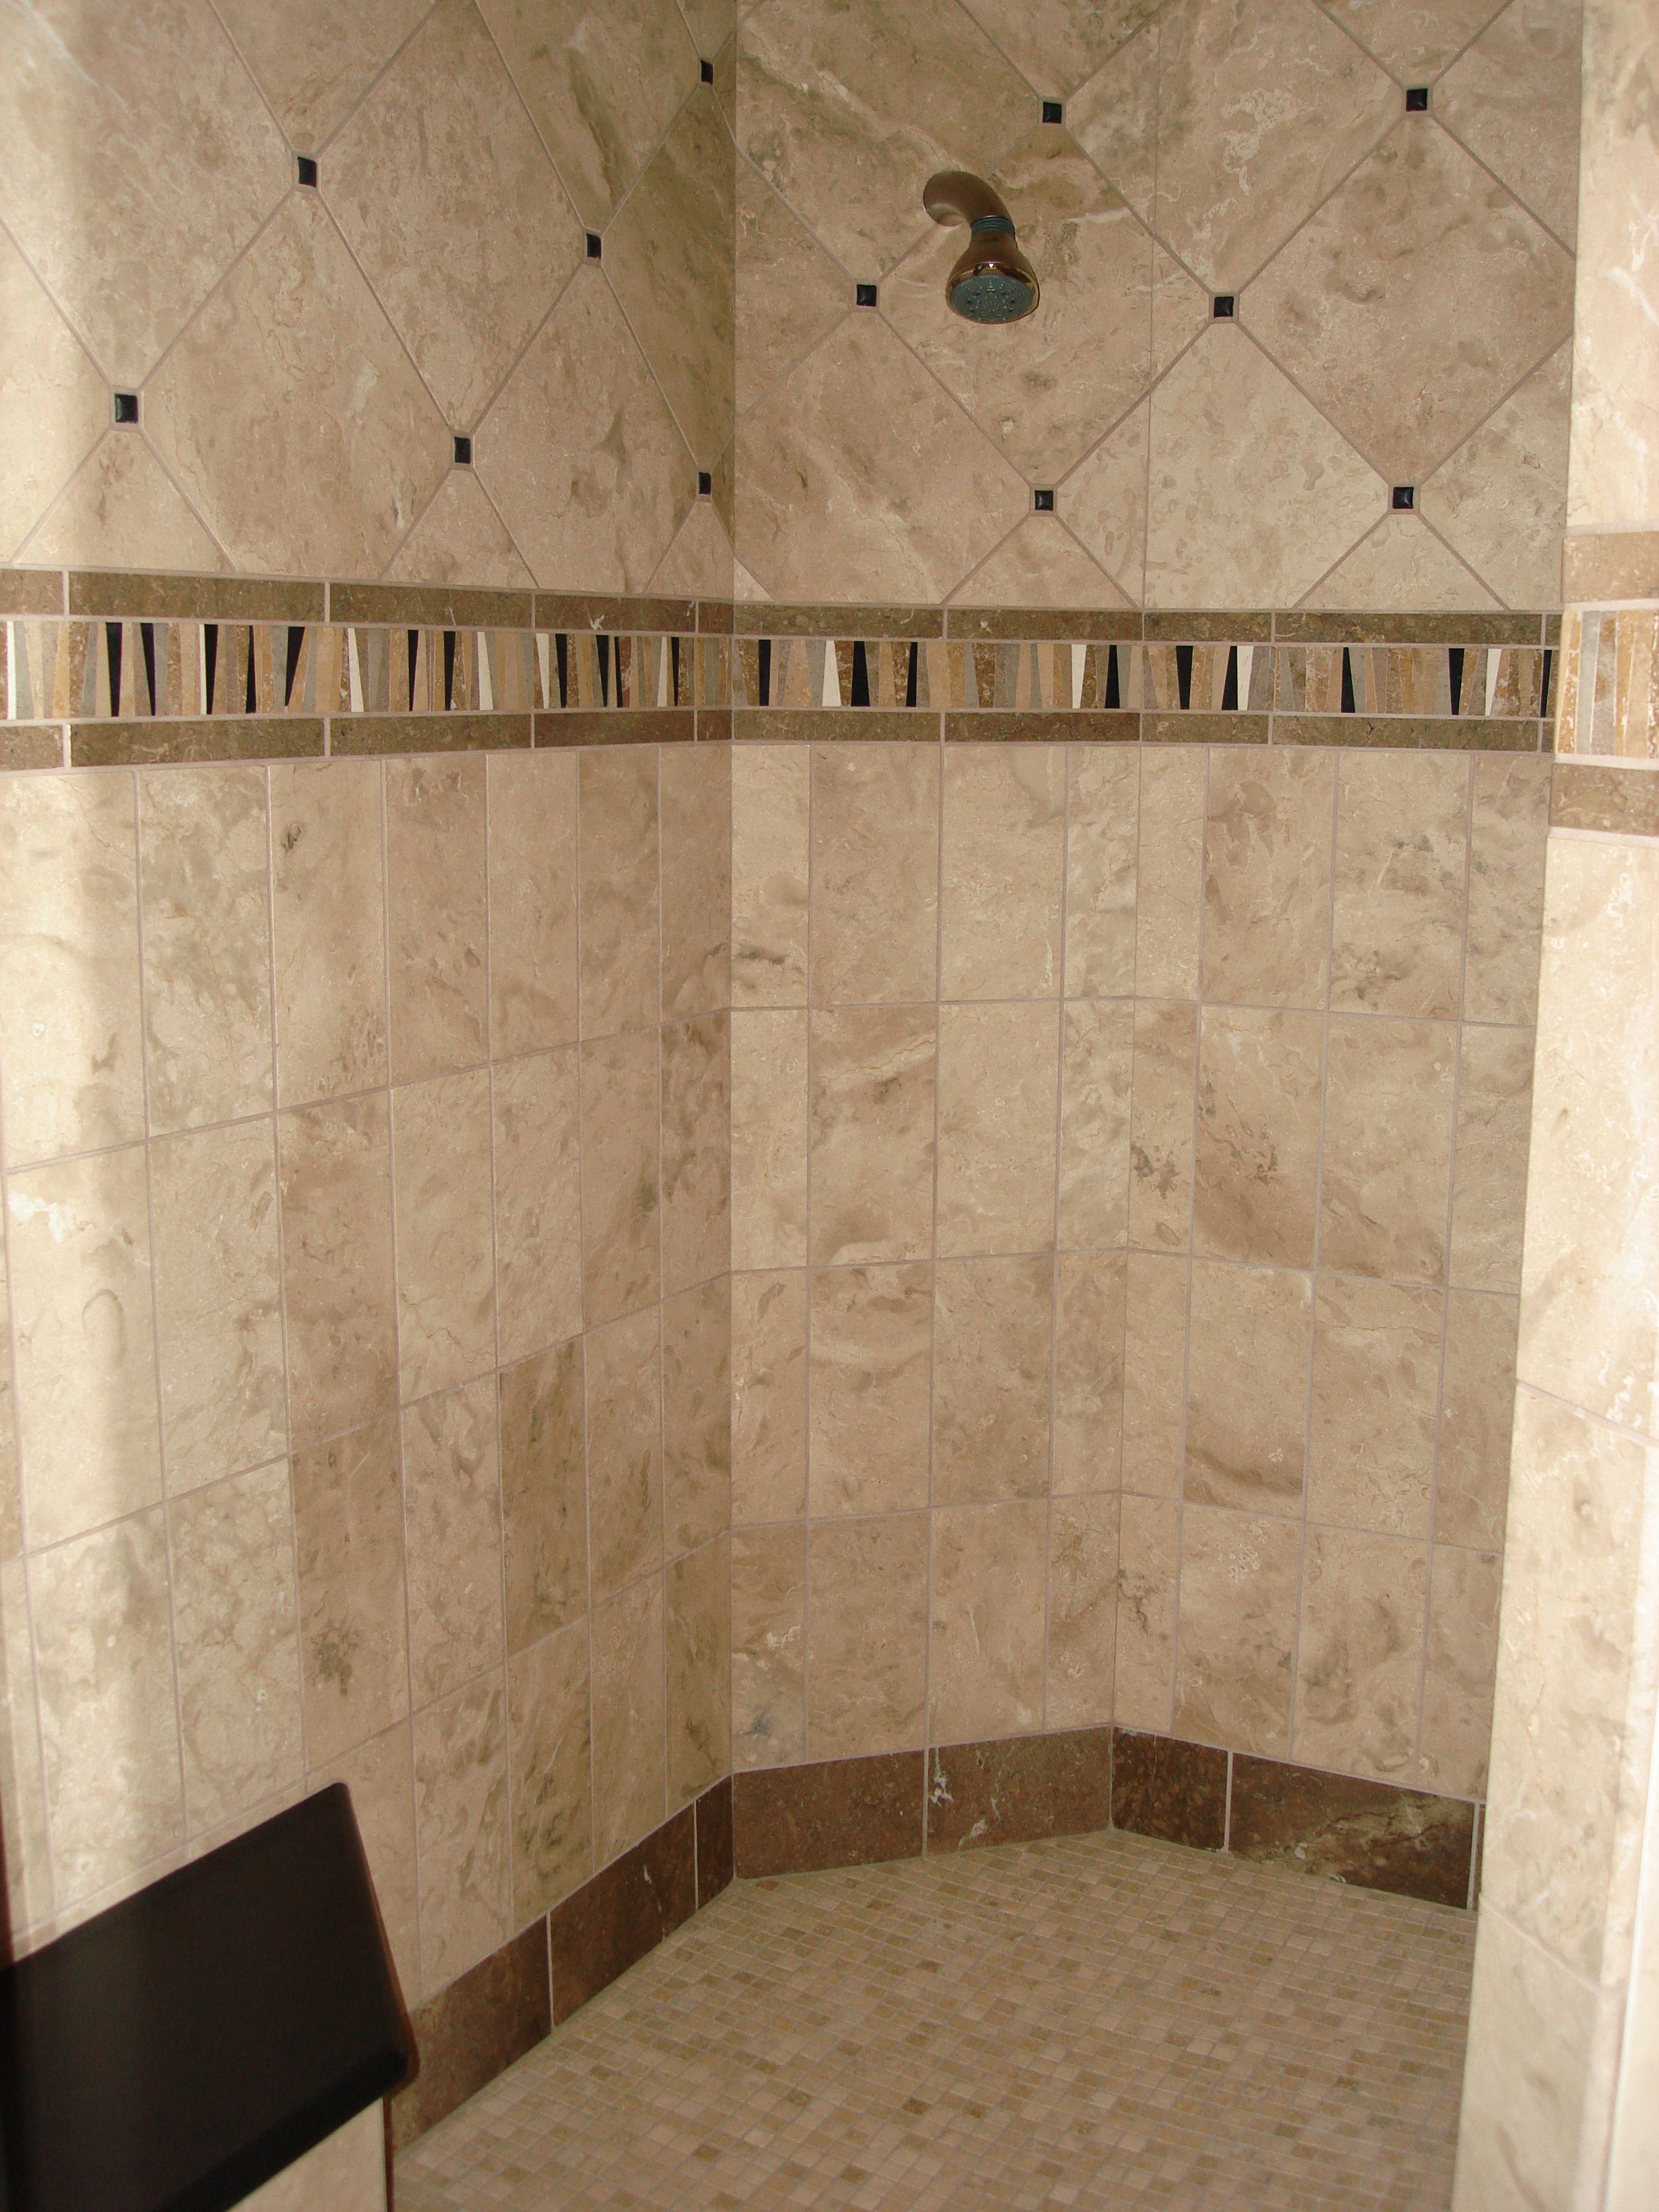 1000 images about shower tile ideas on pinterestshower tiles - Wall Tiles For Bathroom Designs